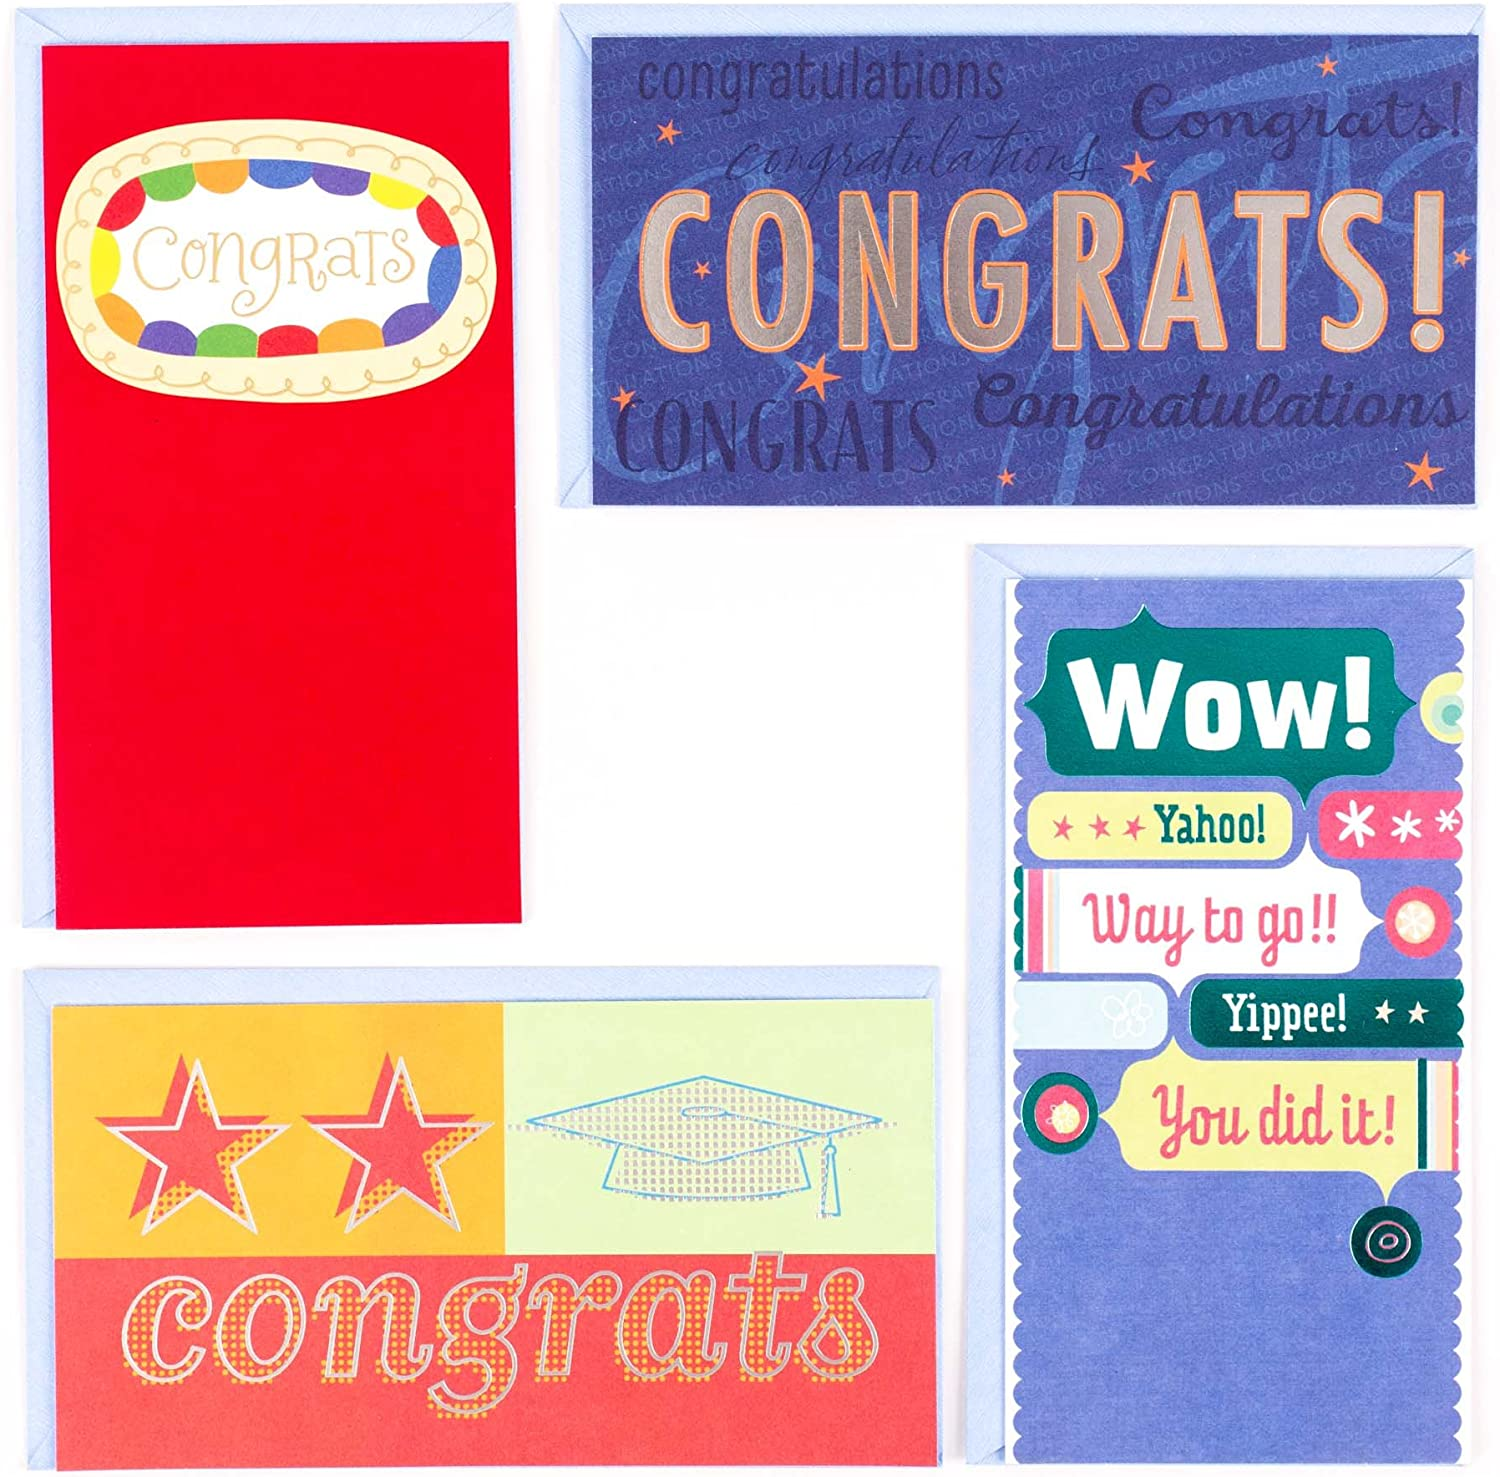 Hallmark Graduation Cards 2021new shipping free shipping Money Holder Max 89% OFF Assor or Gift Card